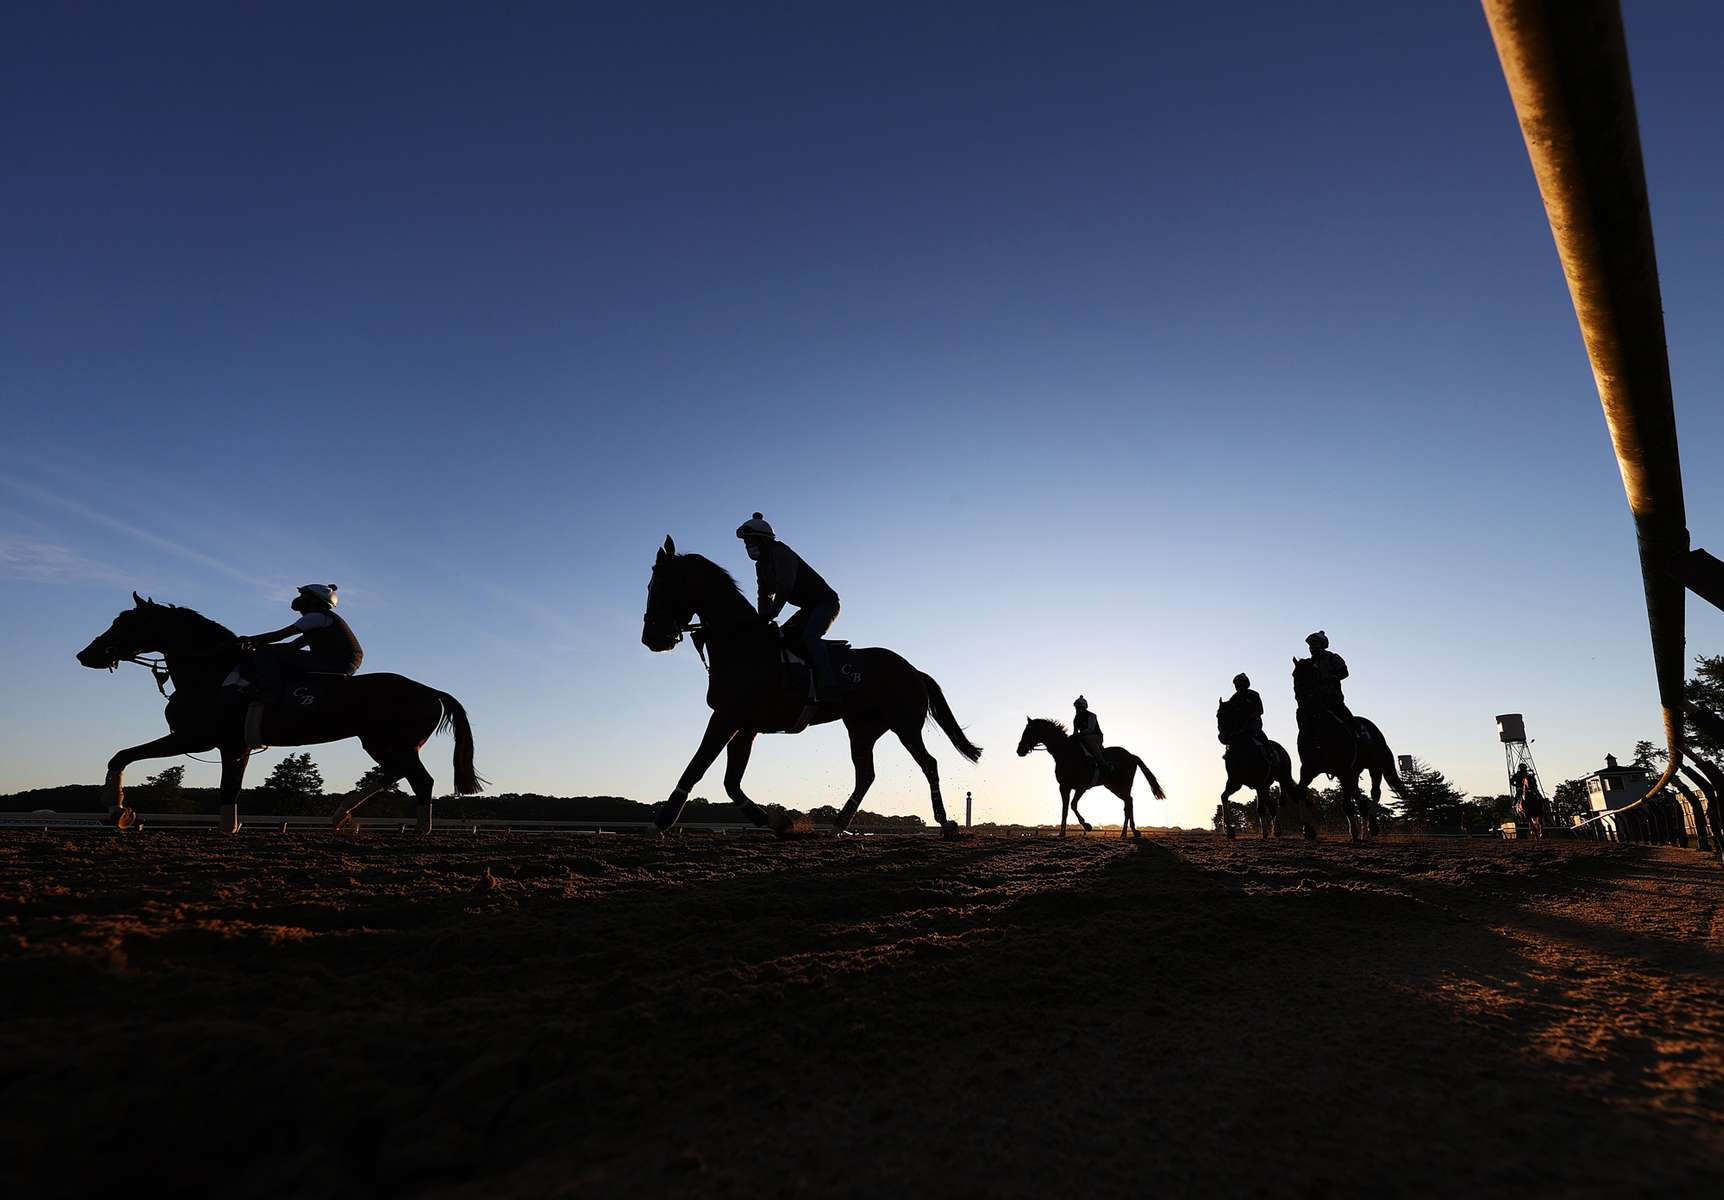 Exercise riders and Racehorses enter the main track during morning training prior to the 152nd running of the Belmont Stakes at Belmont Park on June 17, 2020 in Elmont, New York.